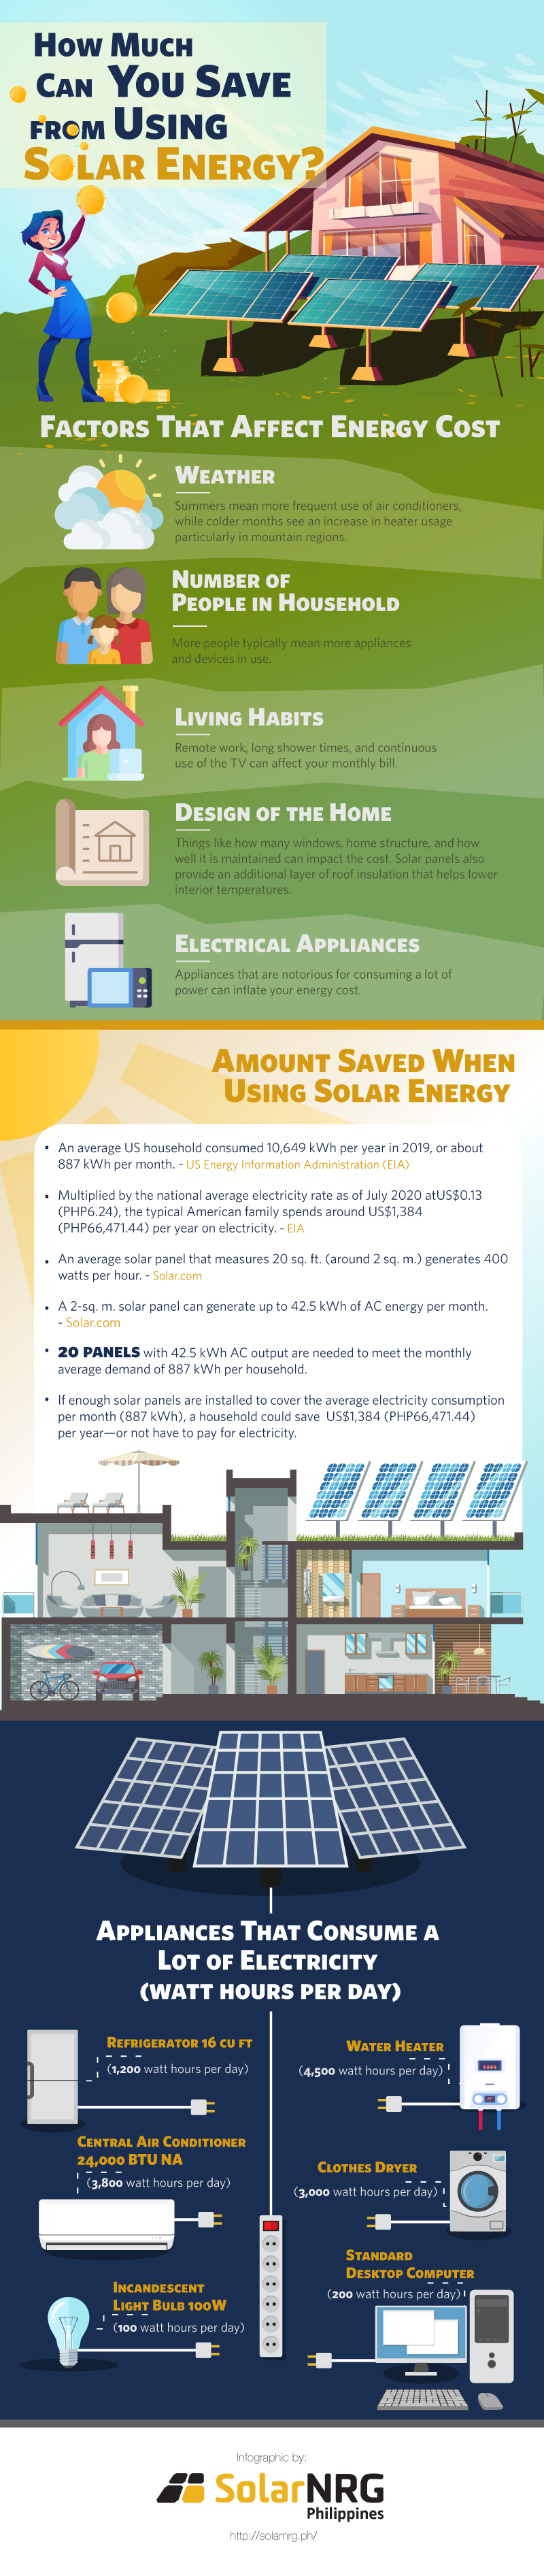 Infographic guide to solar energy costing